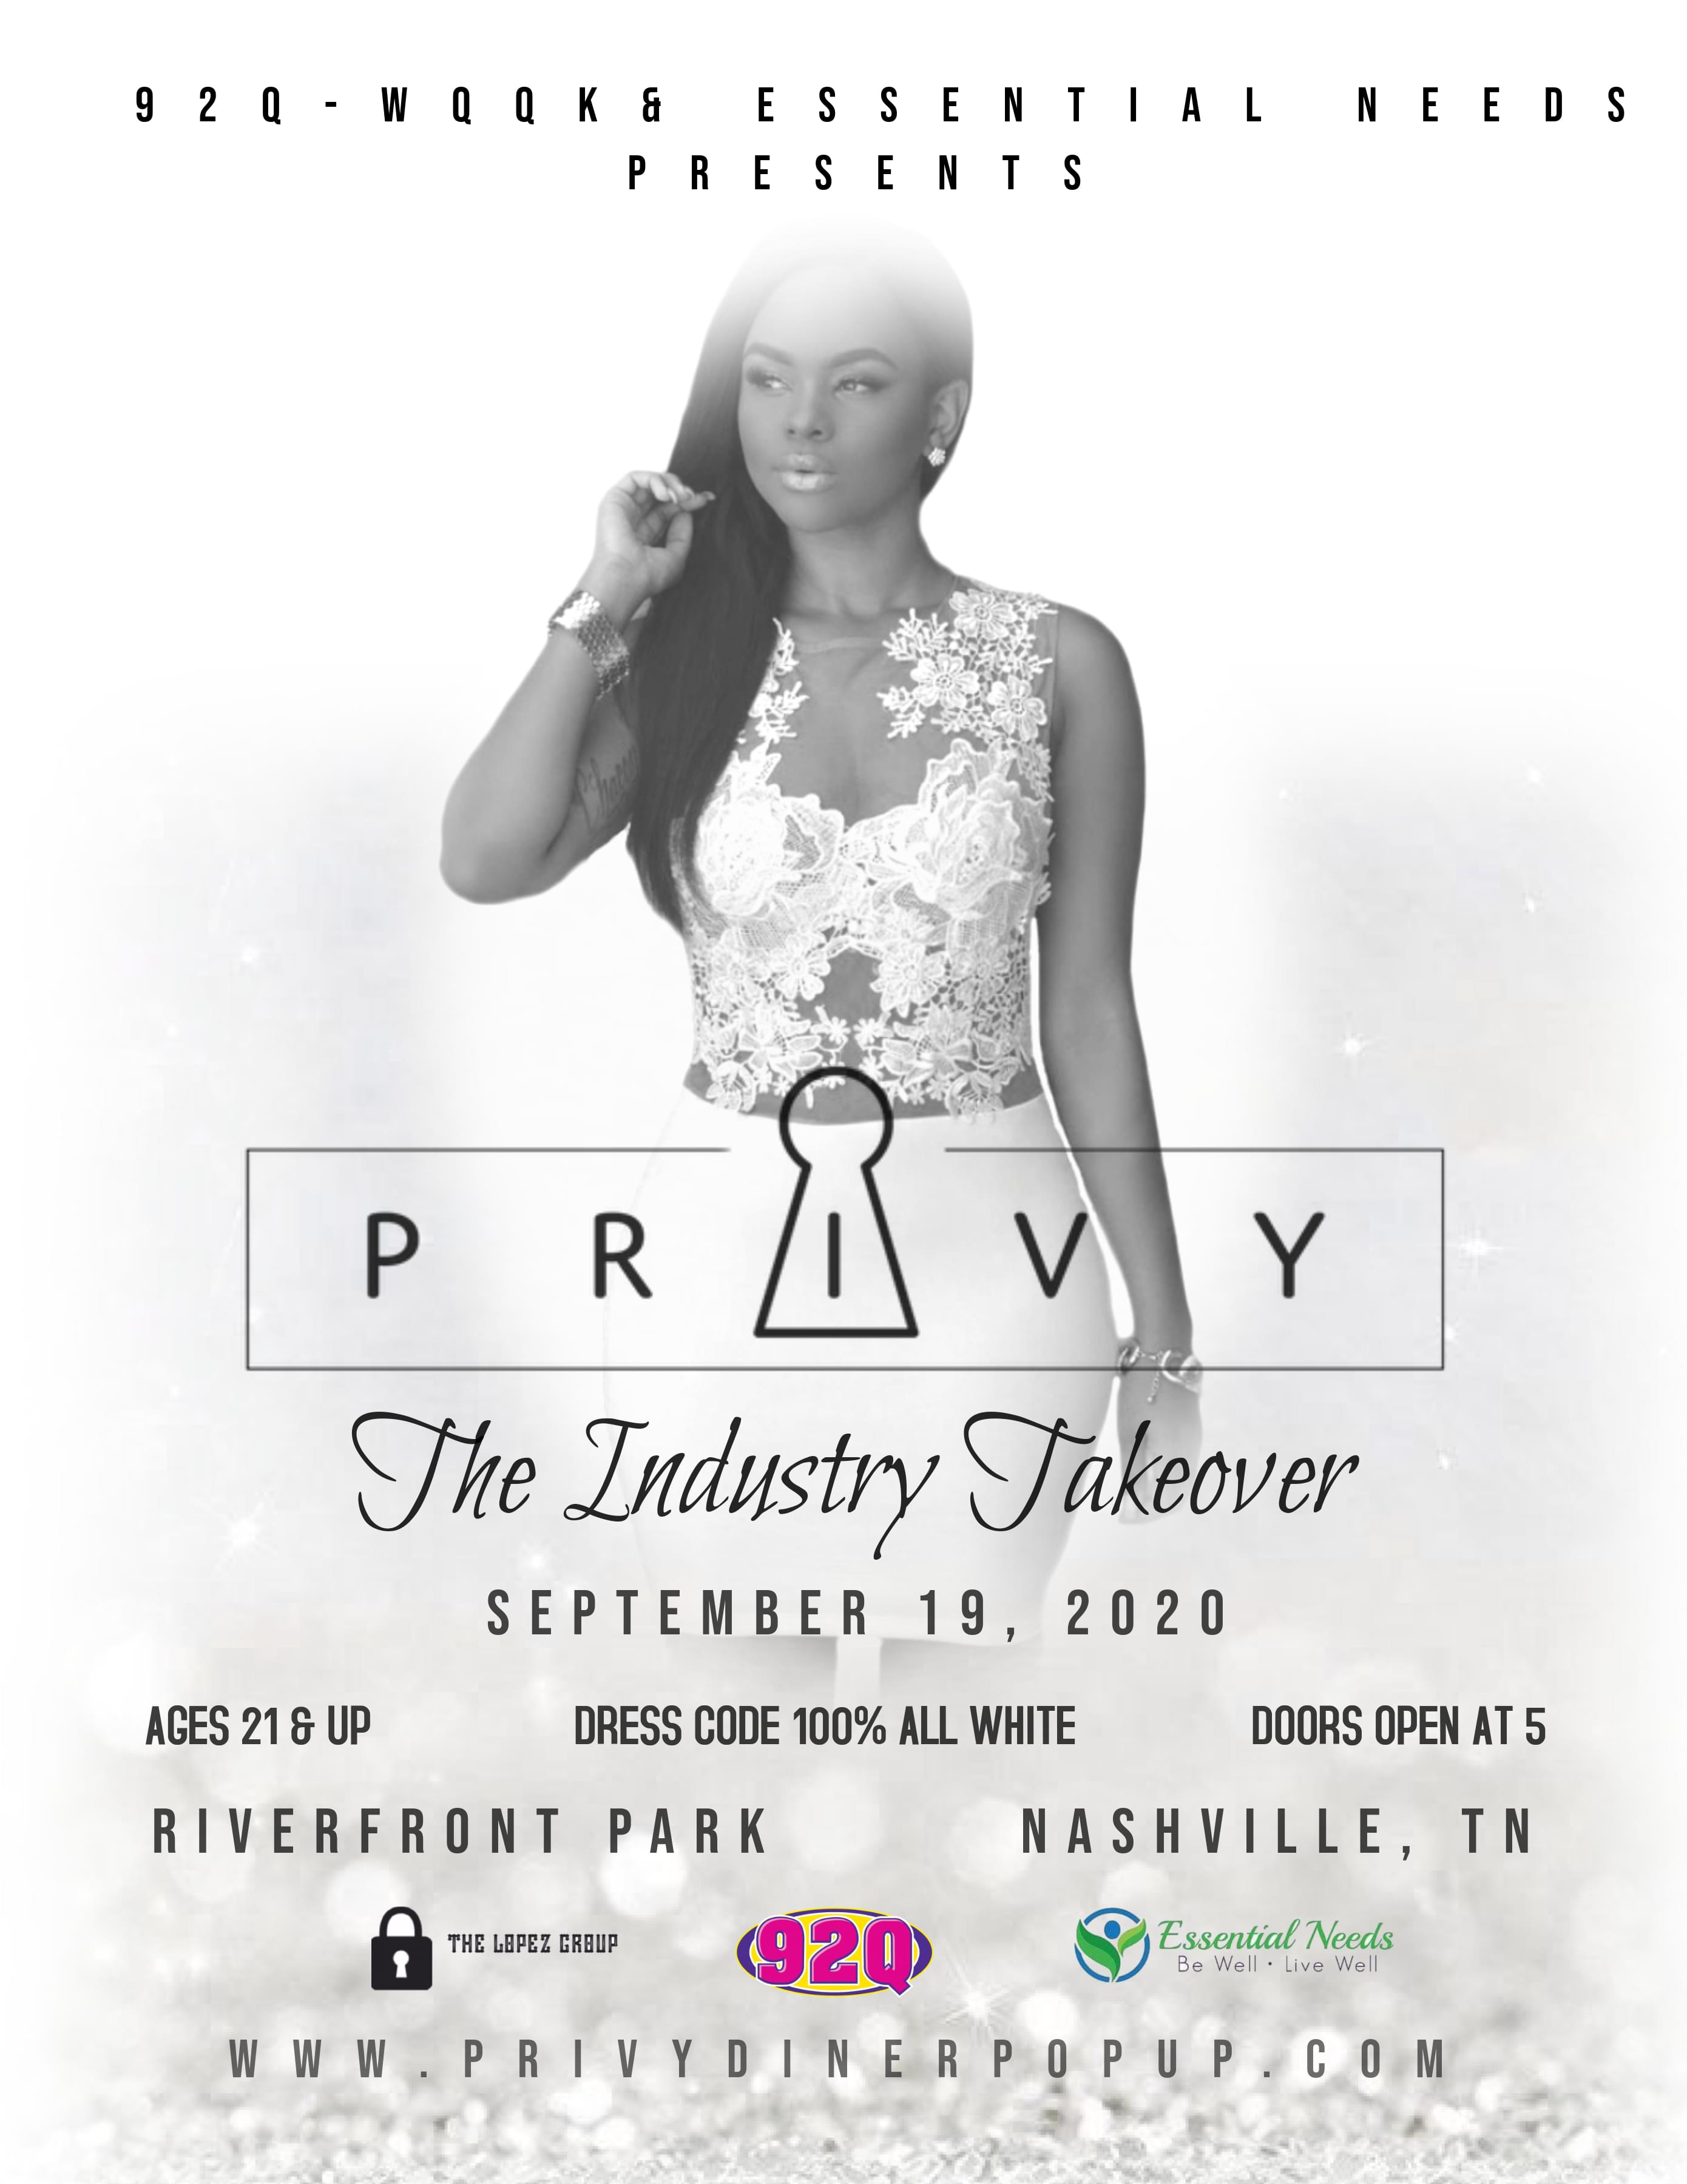 Win Privy Diner Popup Tickets from #KSMS!